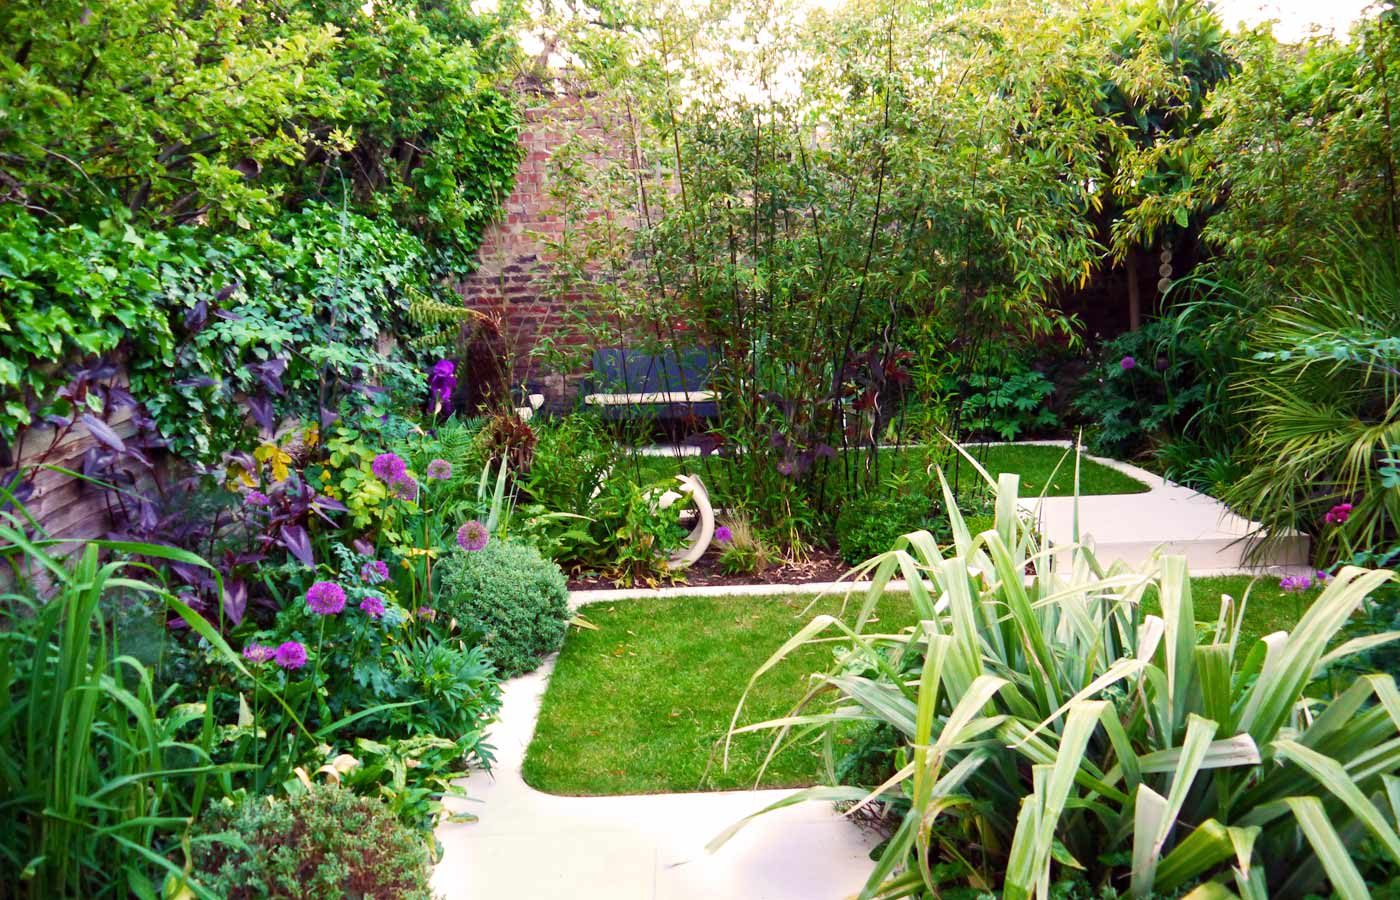 Modern town garden design north facing garden design for Garden design images